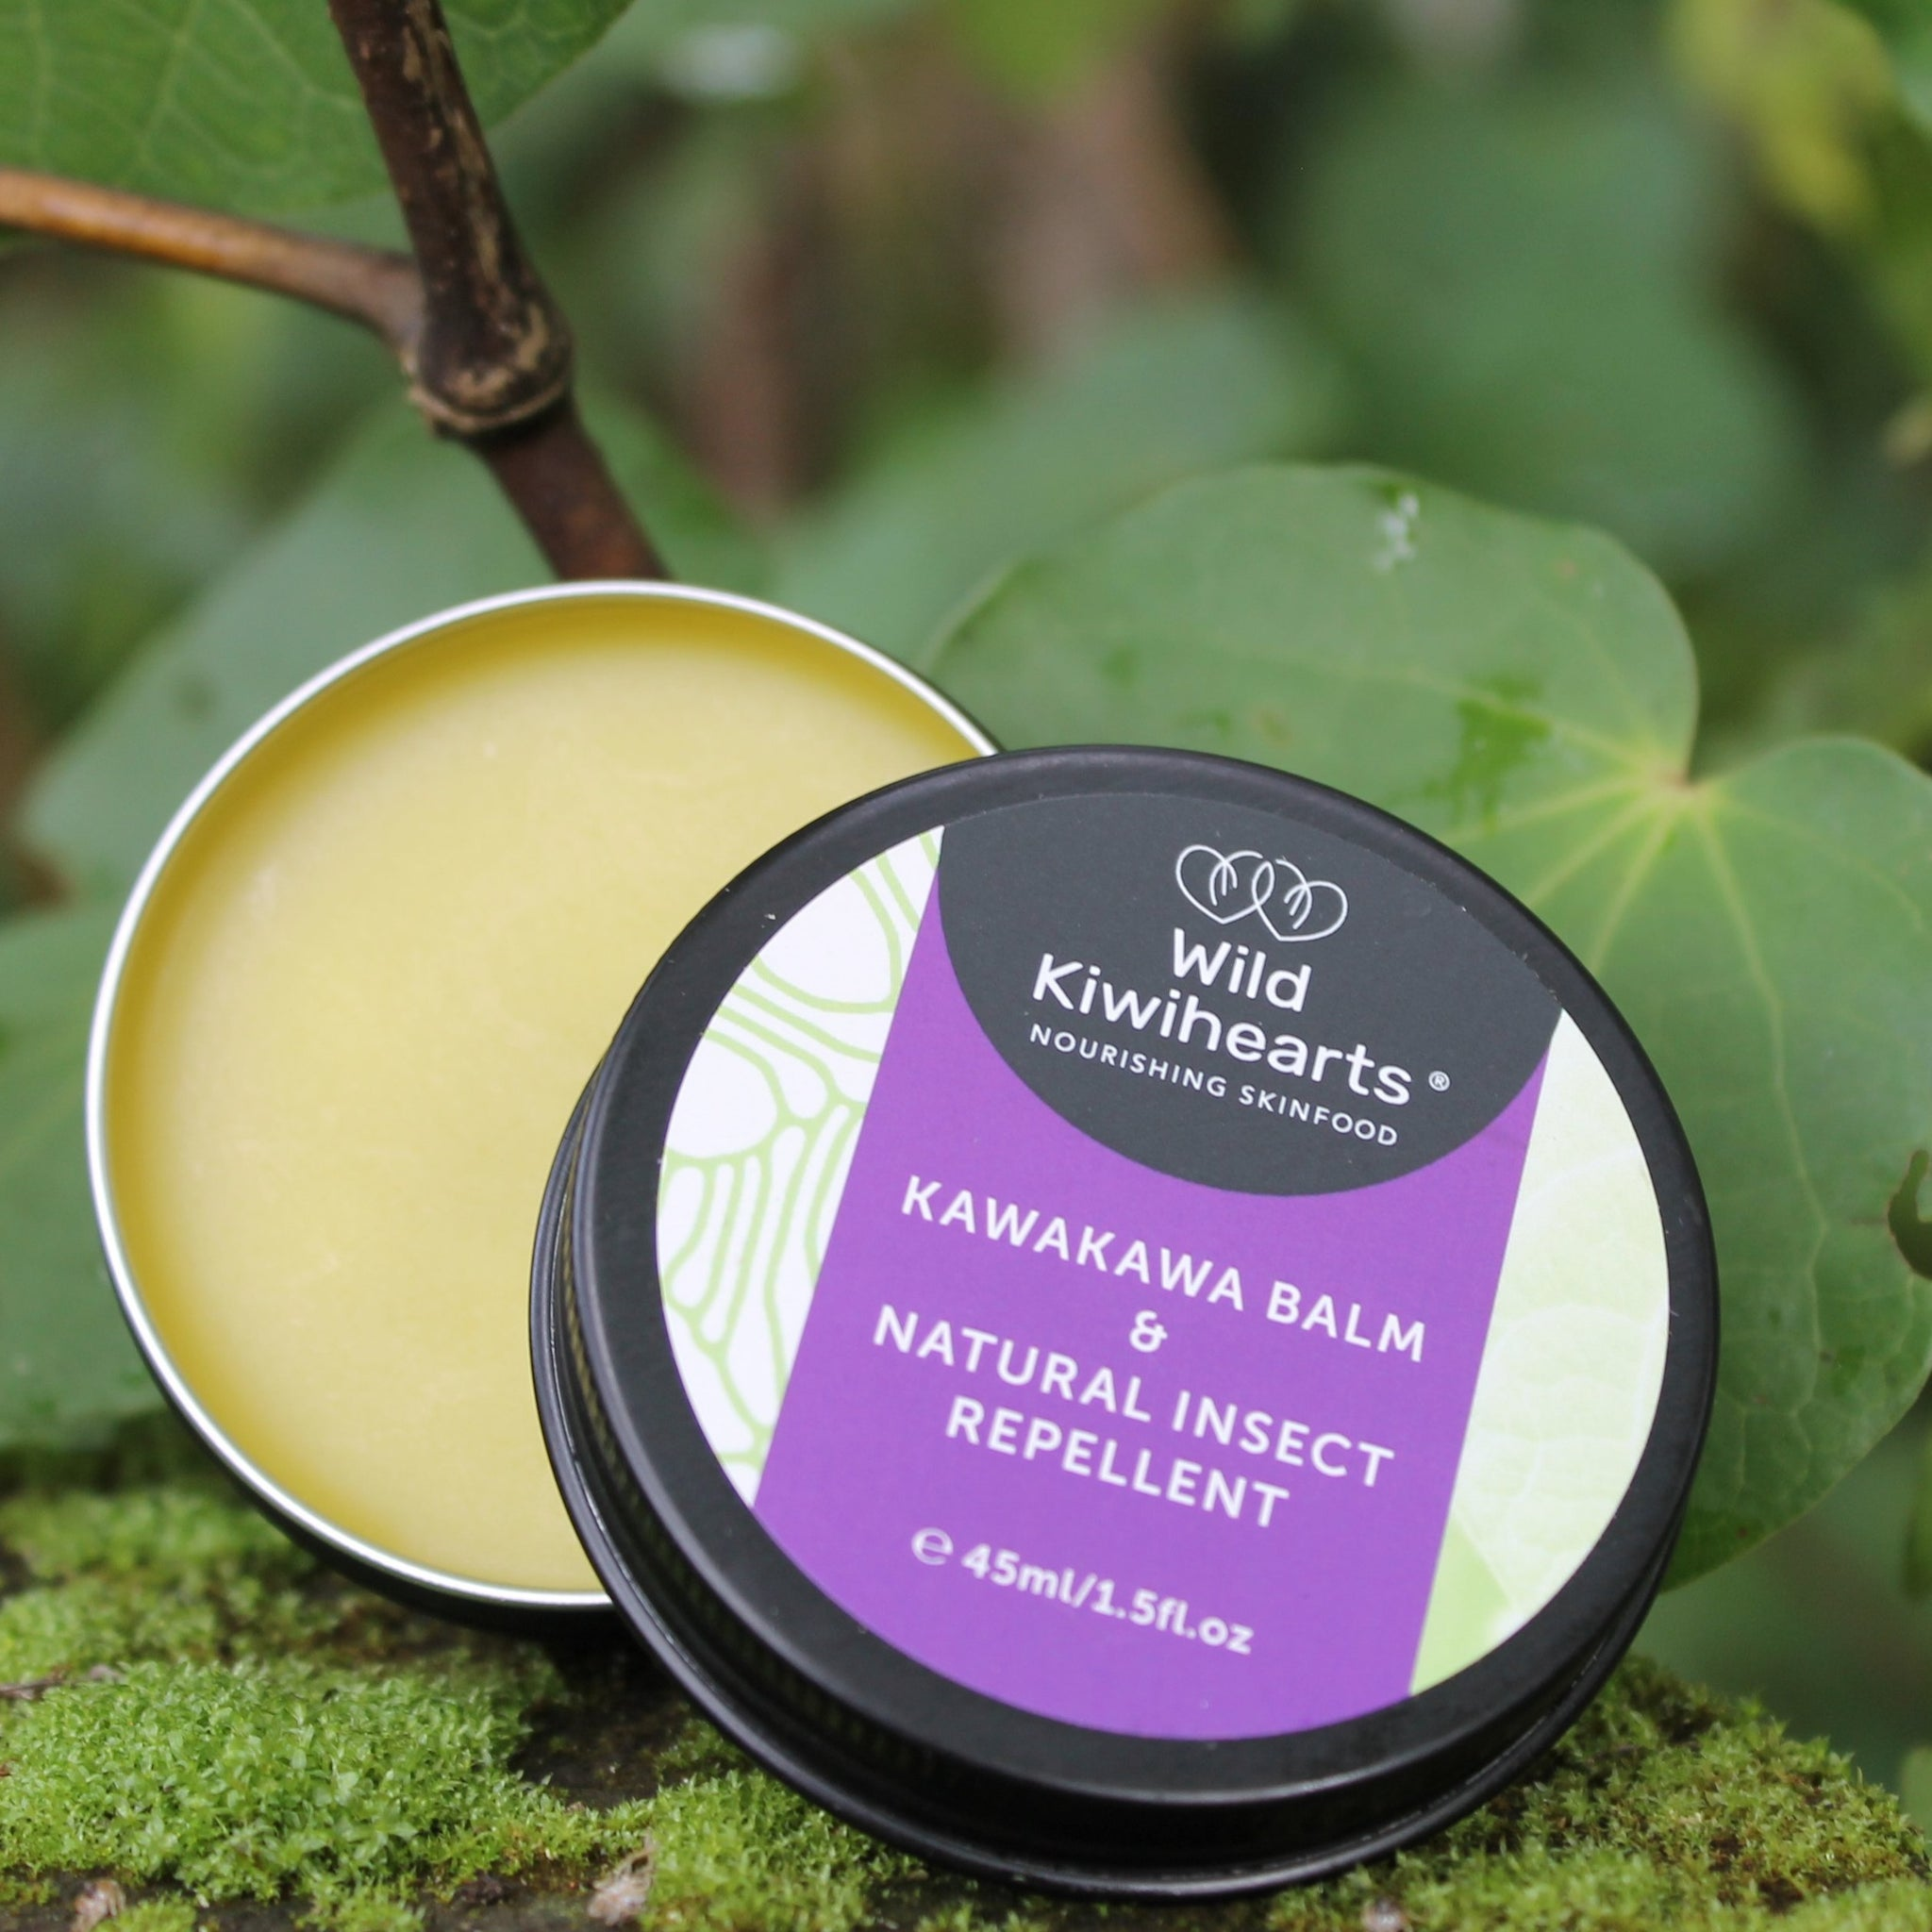 Kawakawa Balm and Natural Insect Repellent 45ml